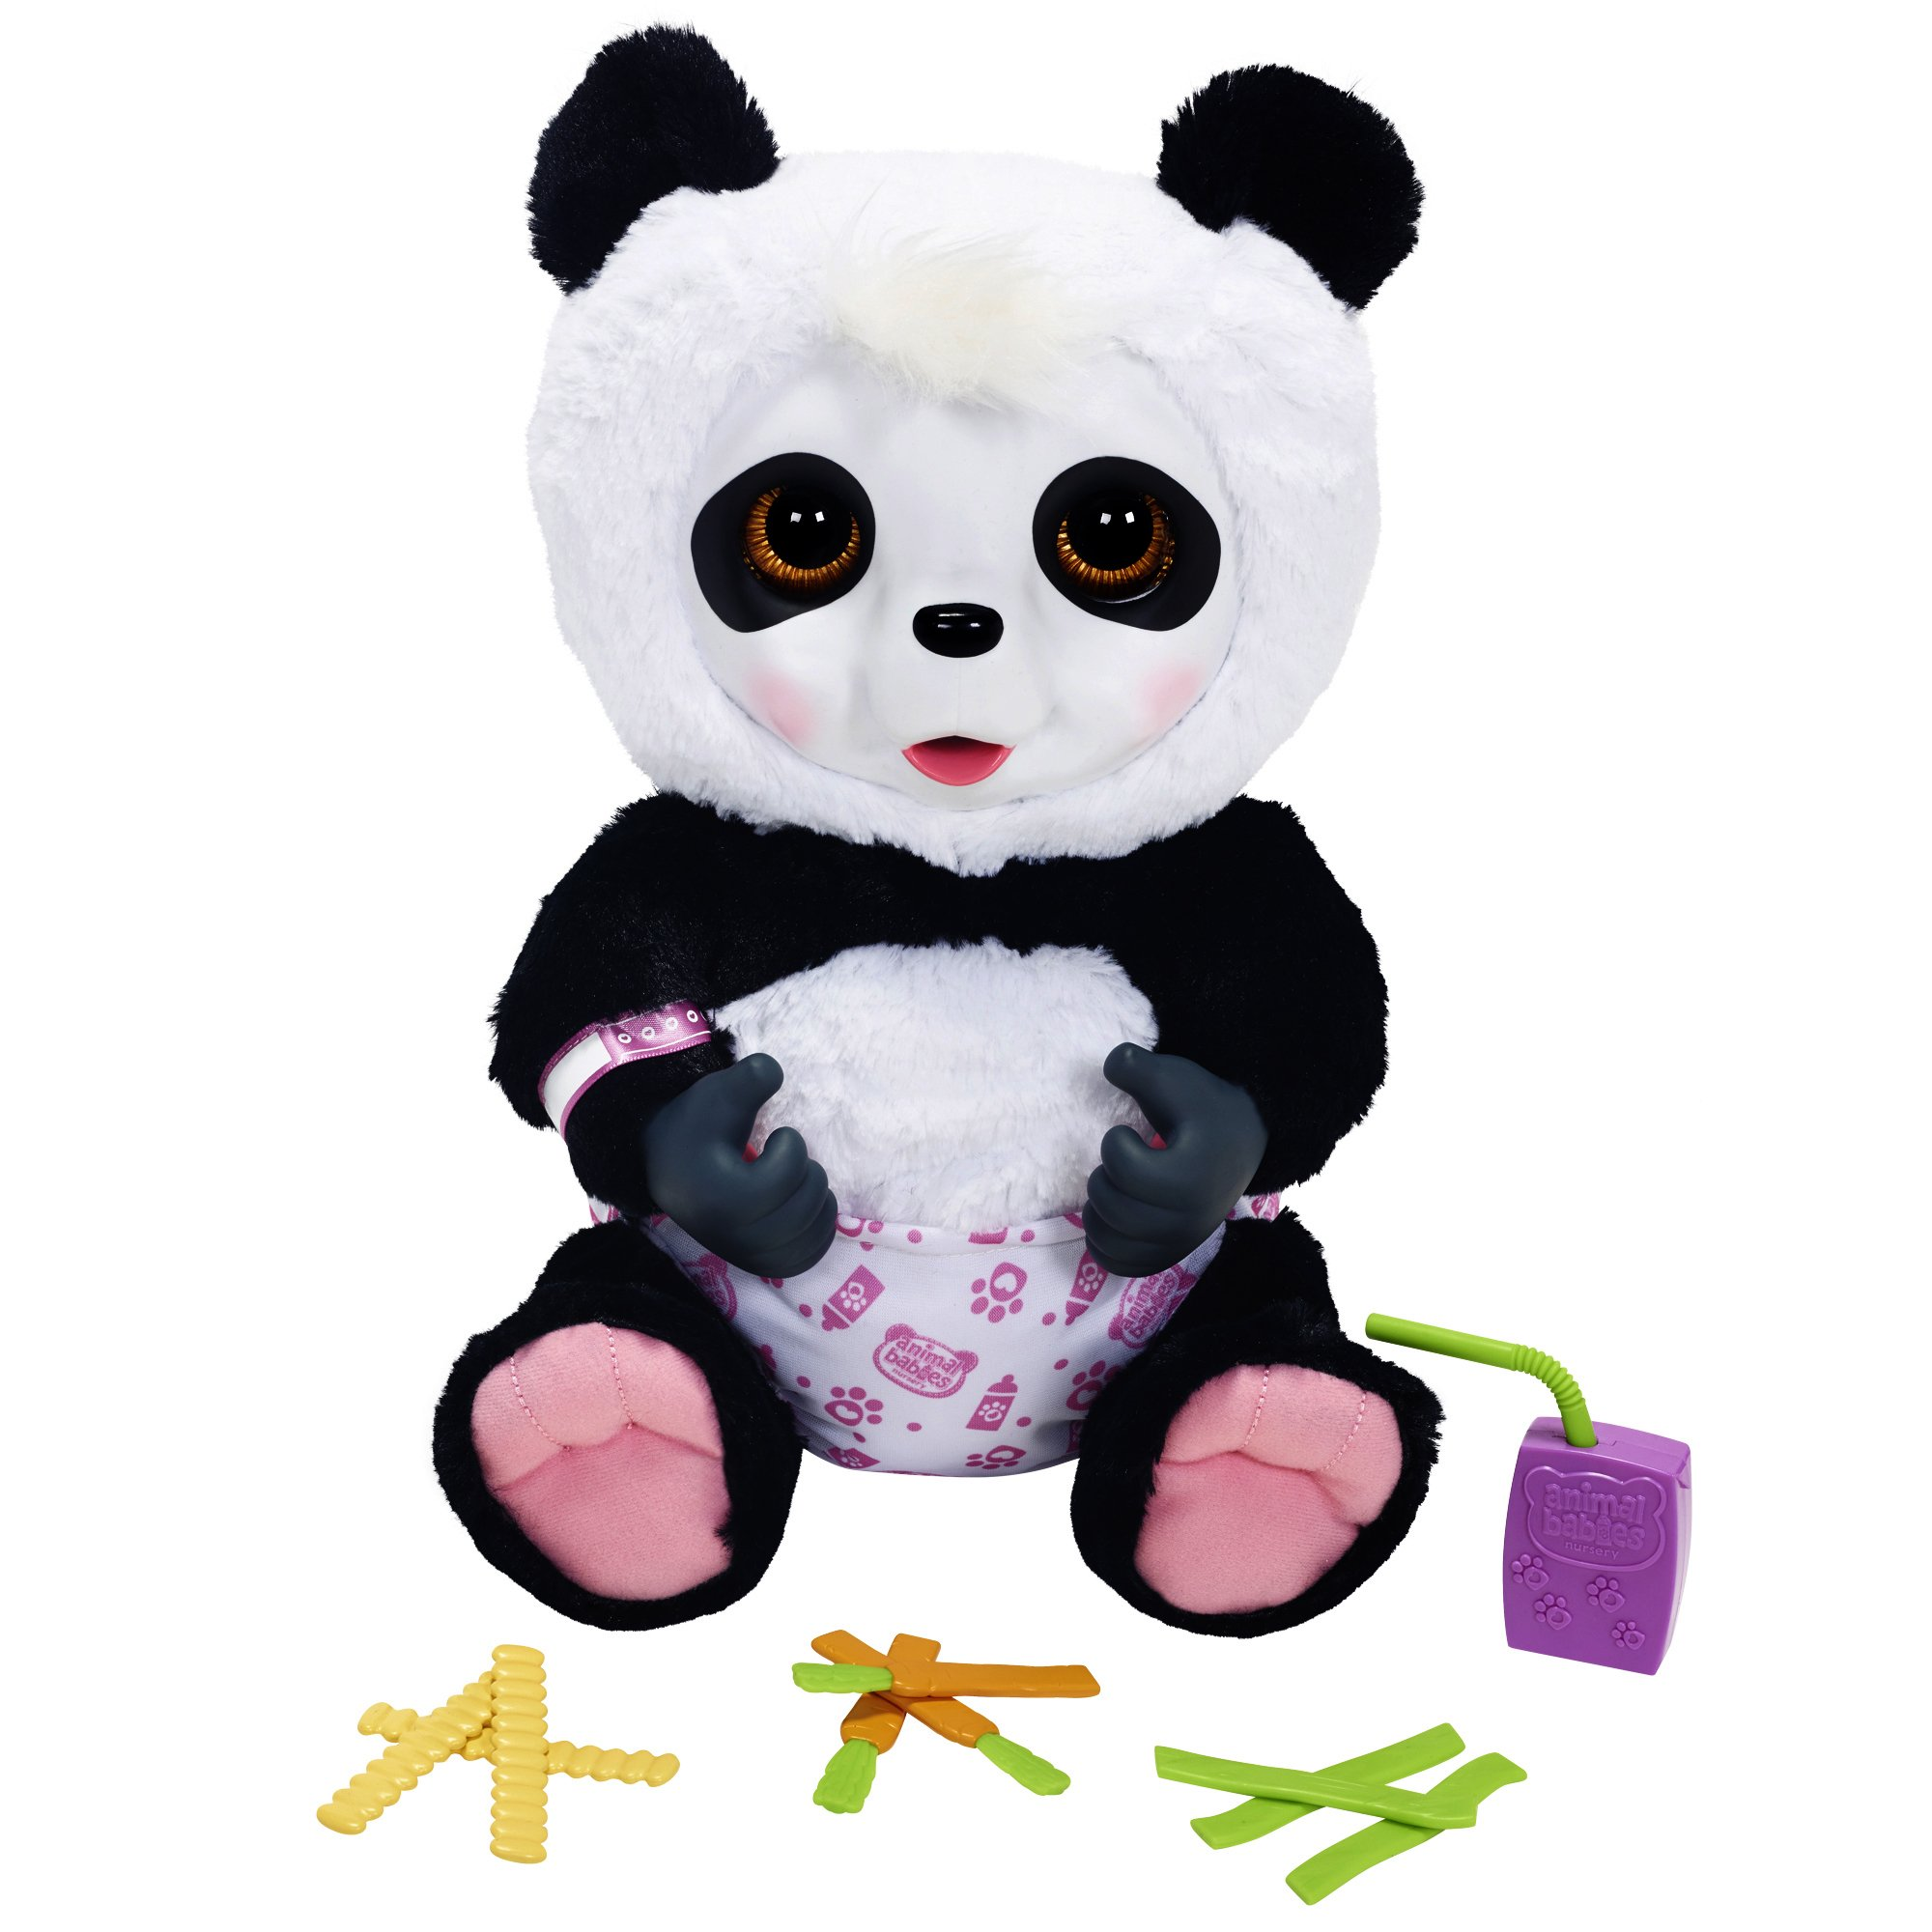 Animal Babies Feature Crunchy Munchy Baby Panda Plush by Animal Babies